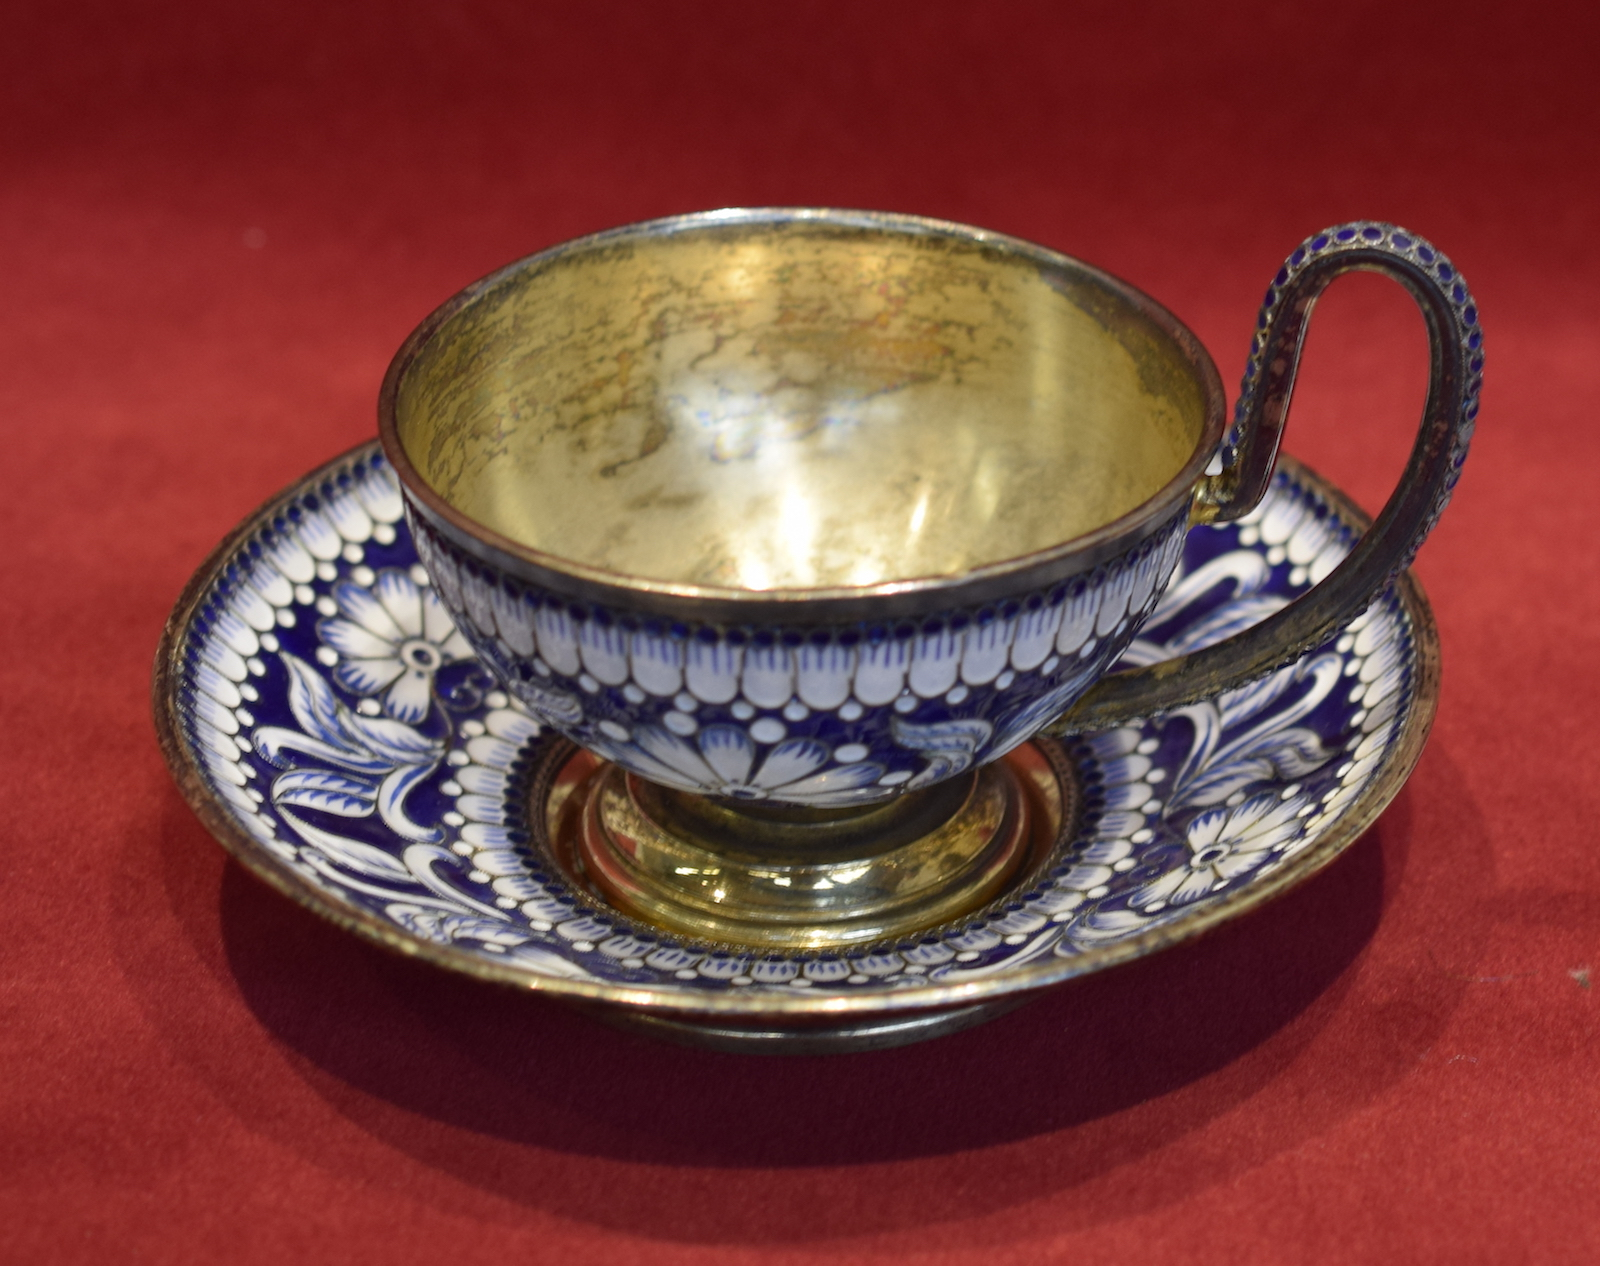 Faberge Cup and Saucer